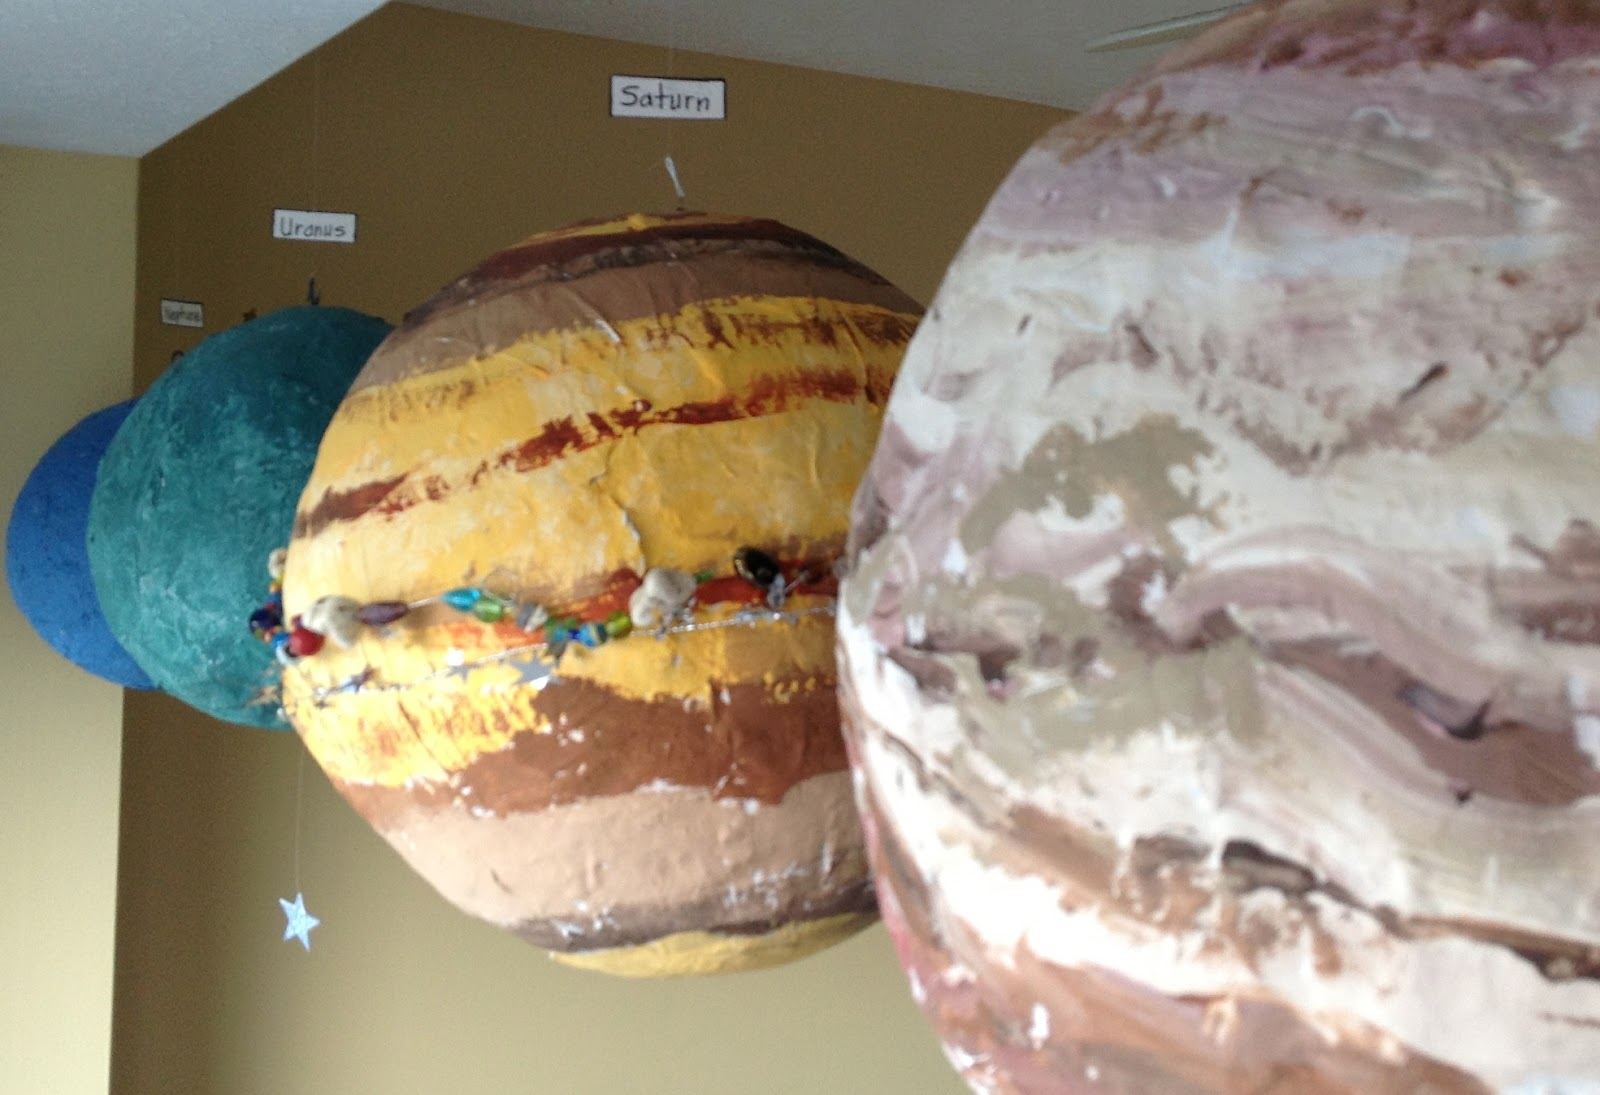 paper mache planet venus - photo #24